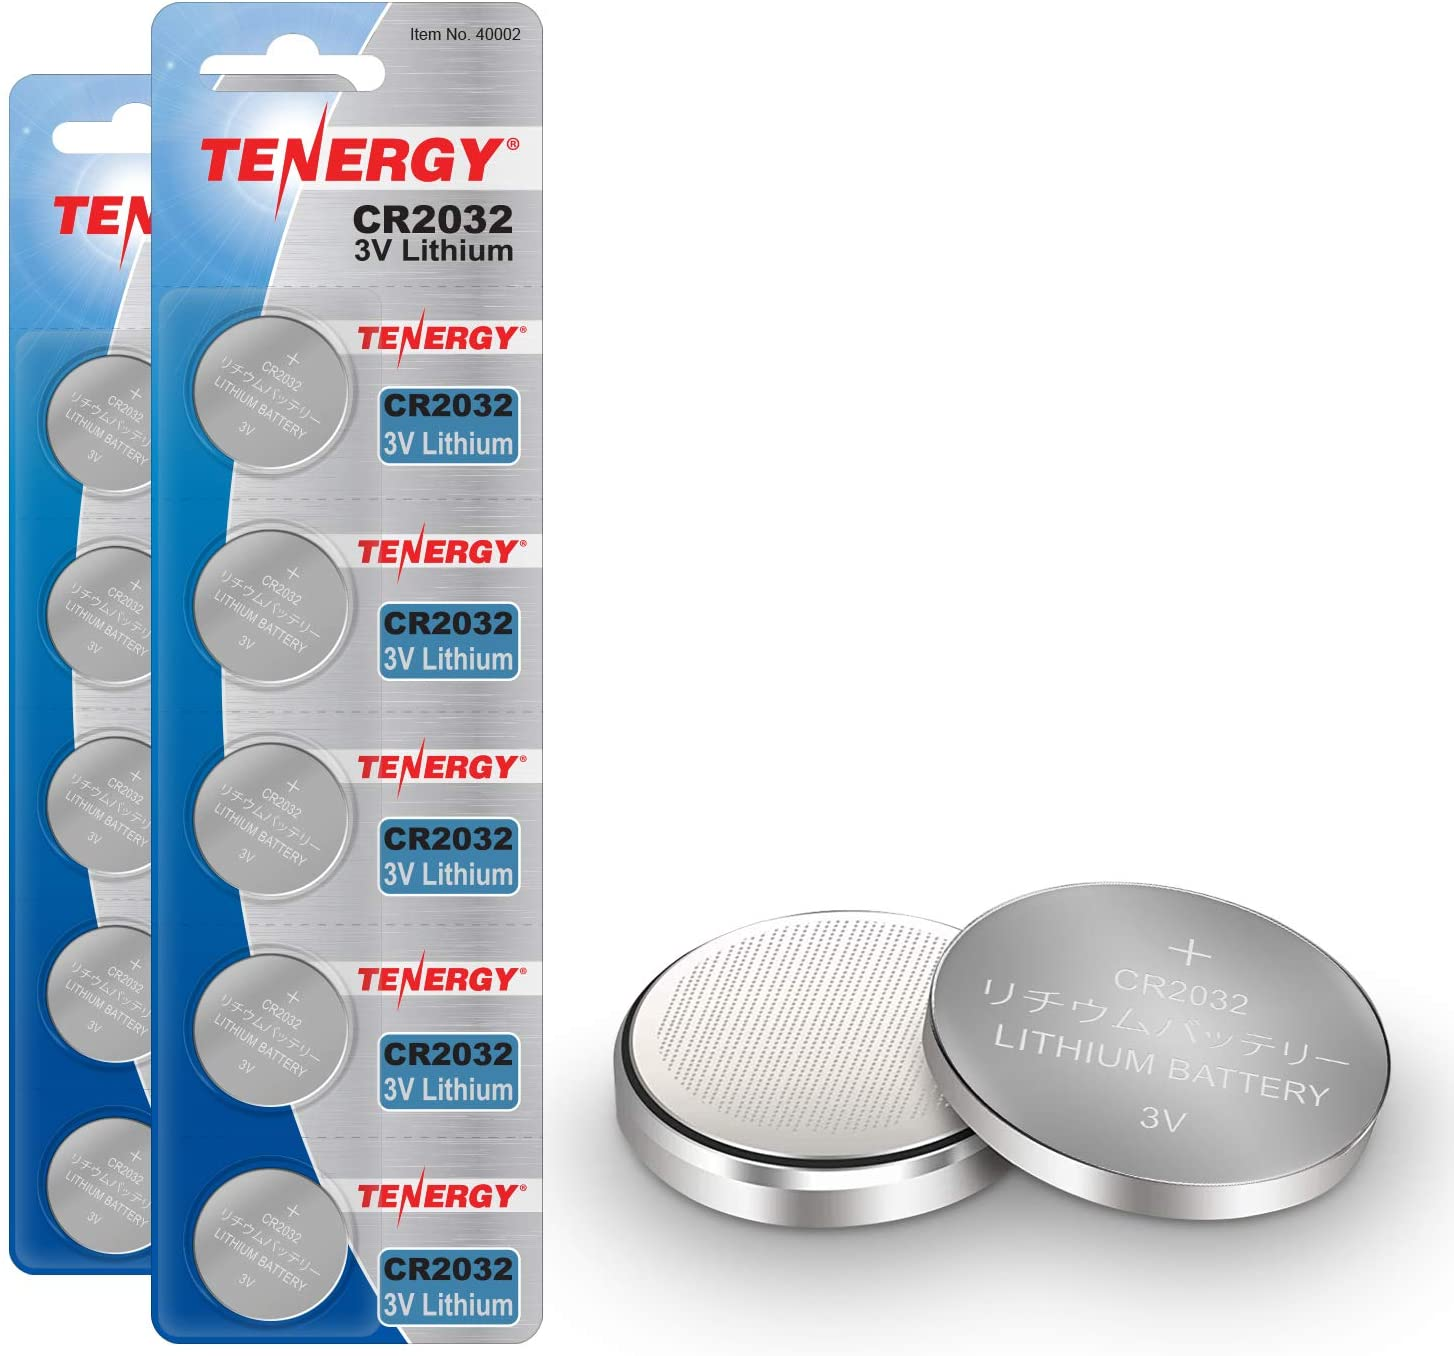 Tenergy 3V Superior CR2032 Batteries Lithium Coin Batte Button 2032 El Paso Mall Cell